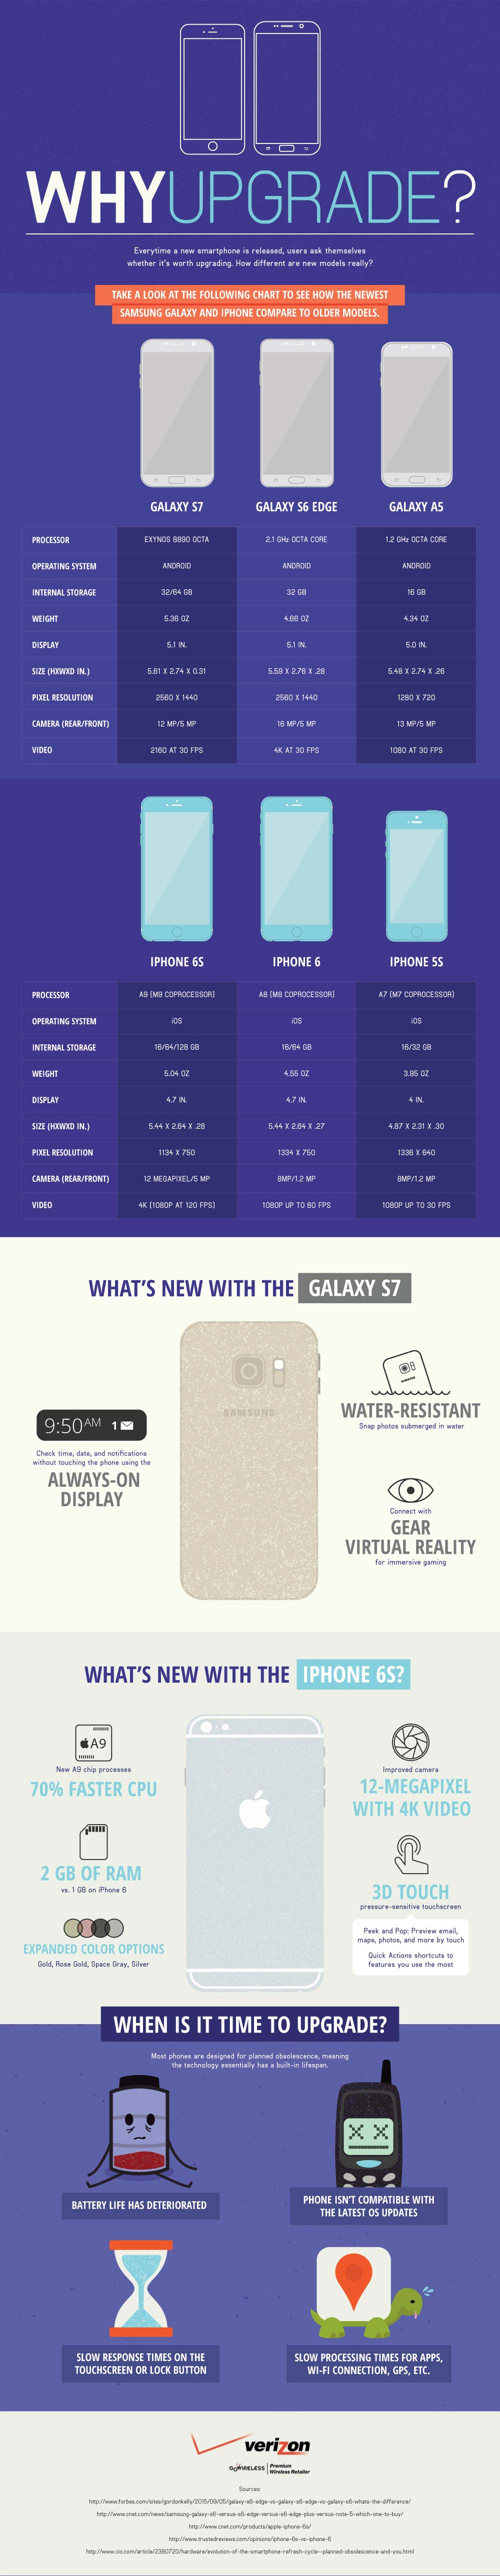 Why Upgrade? An iPhone and Samsung Galaxy Comparison